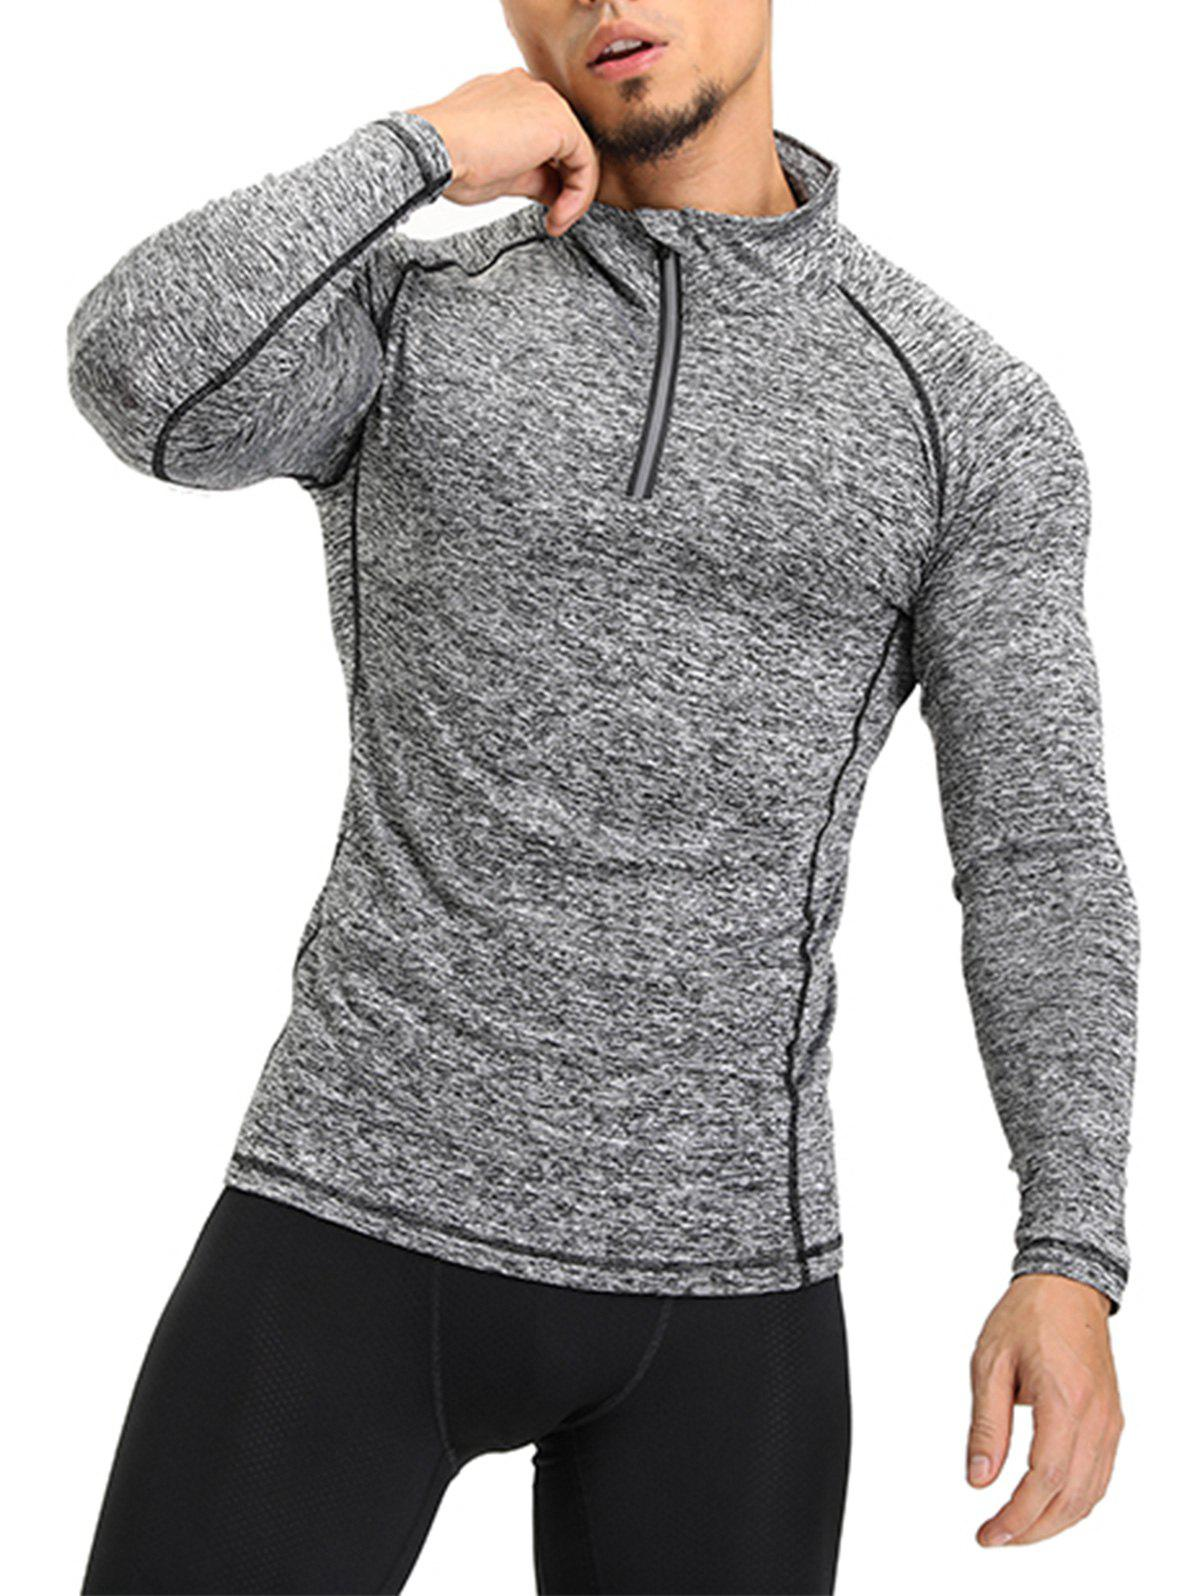 Raglan Sleeve Half Zip T-shirt - GRAY L